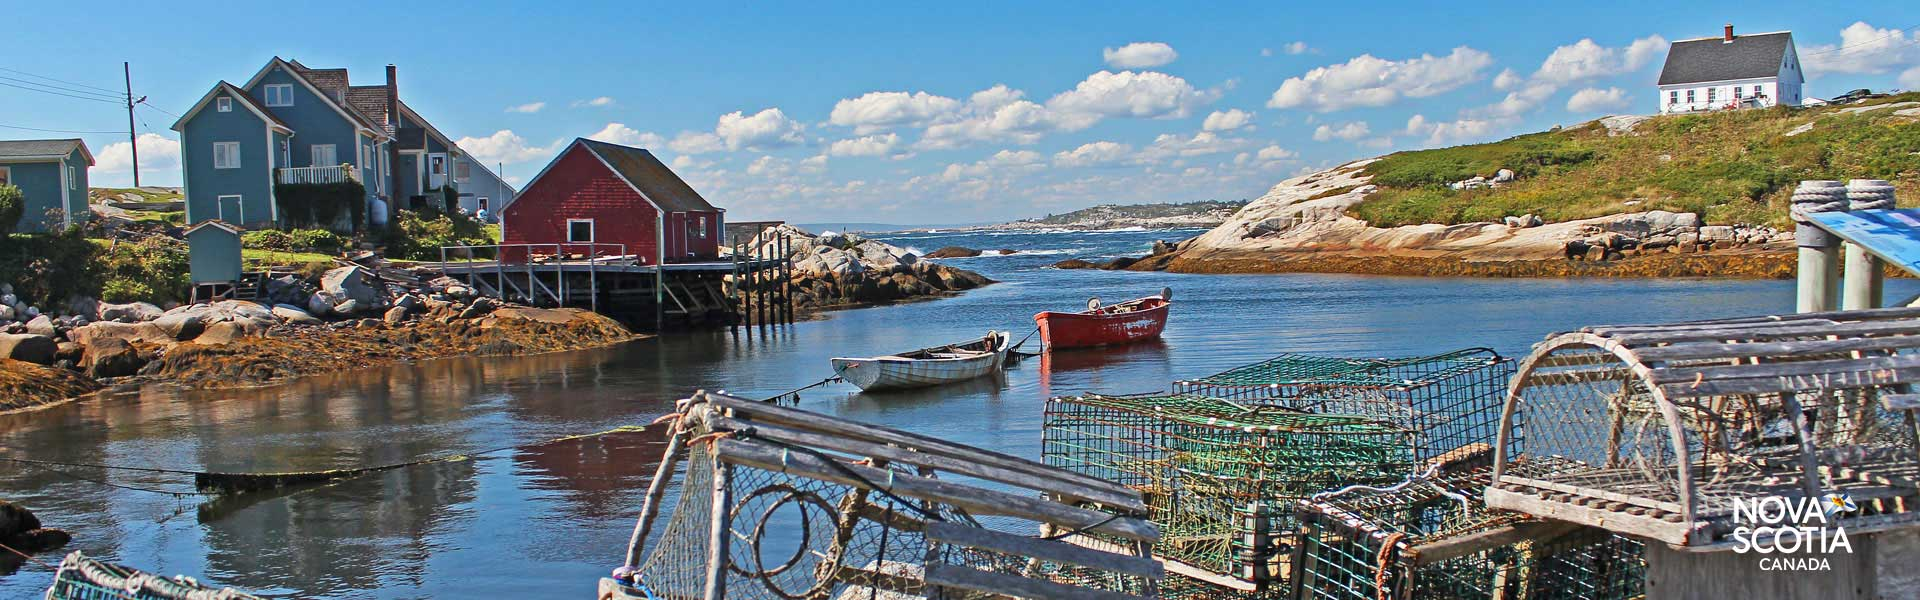 Nova Scotia Vacation Packages